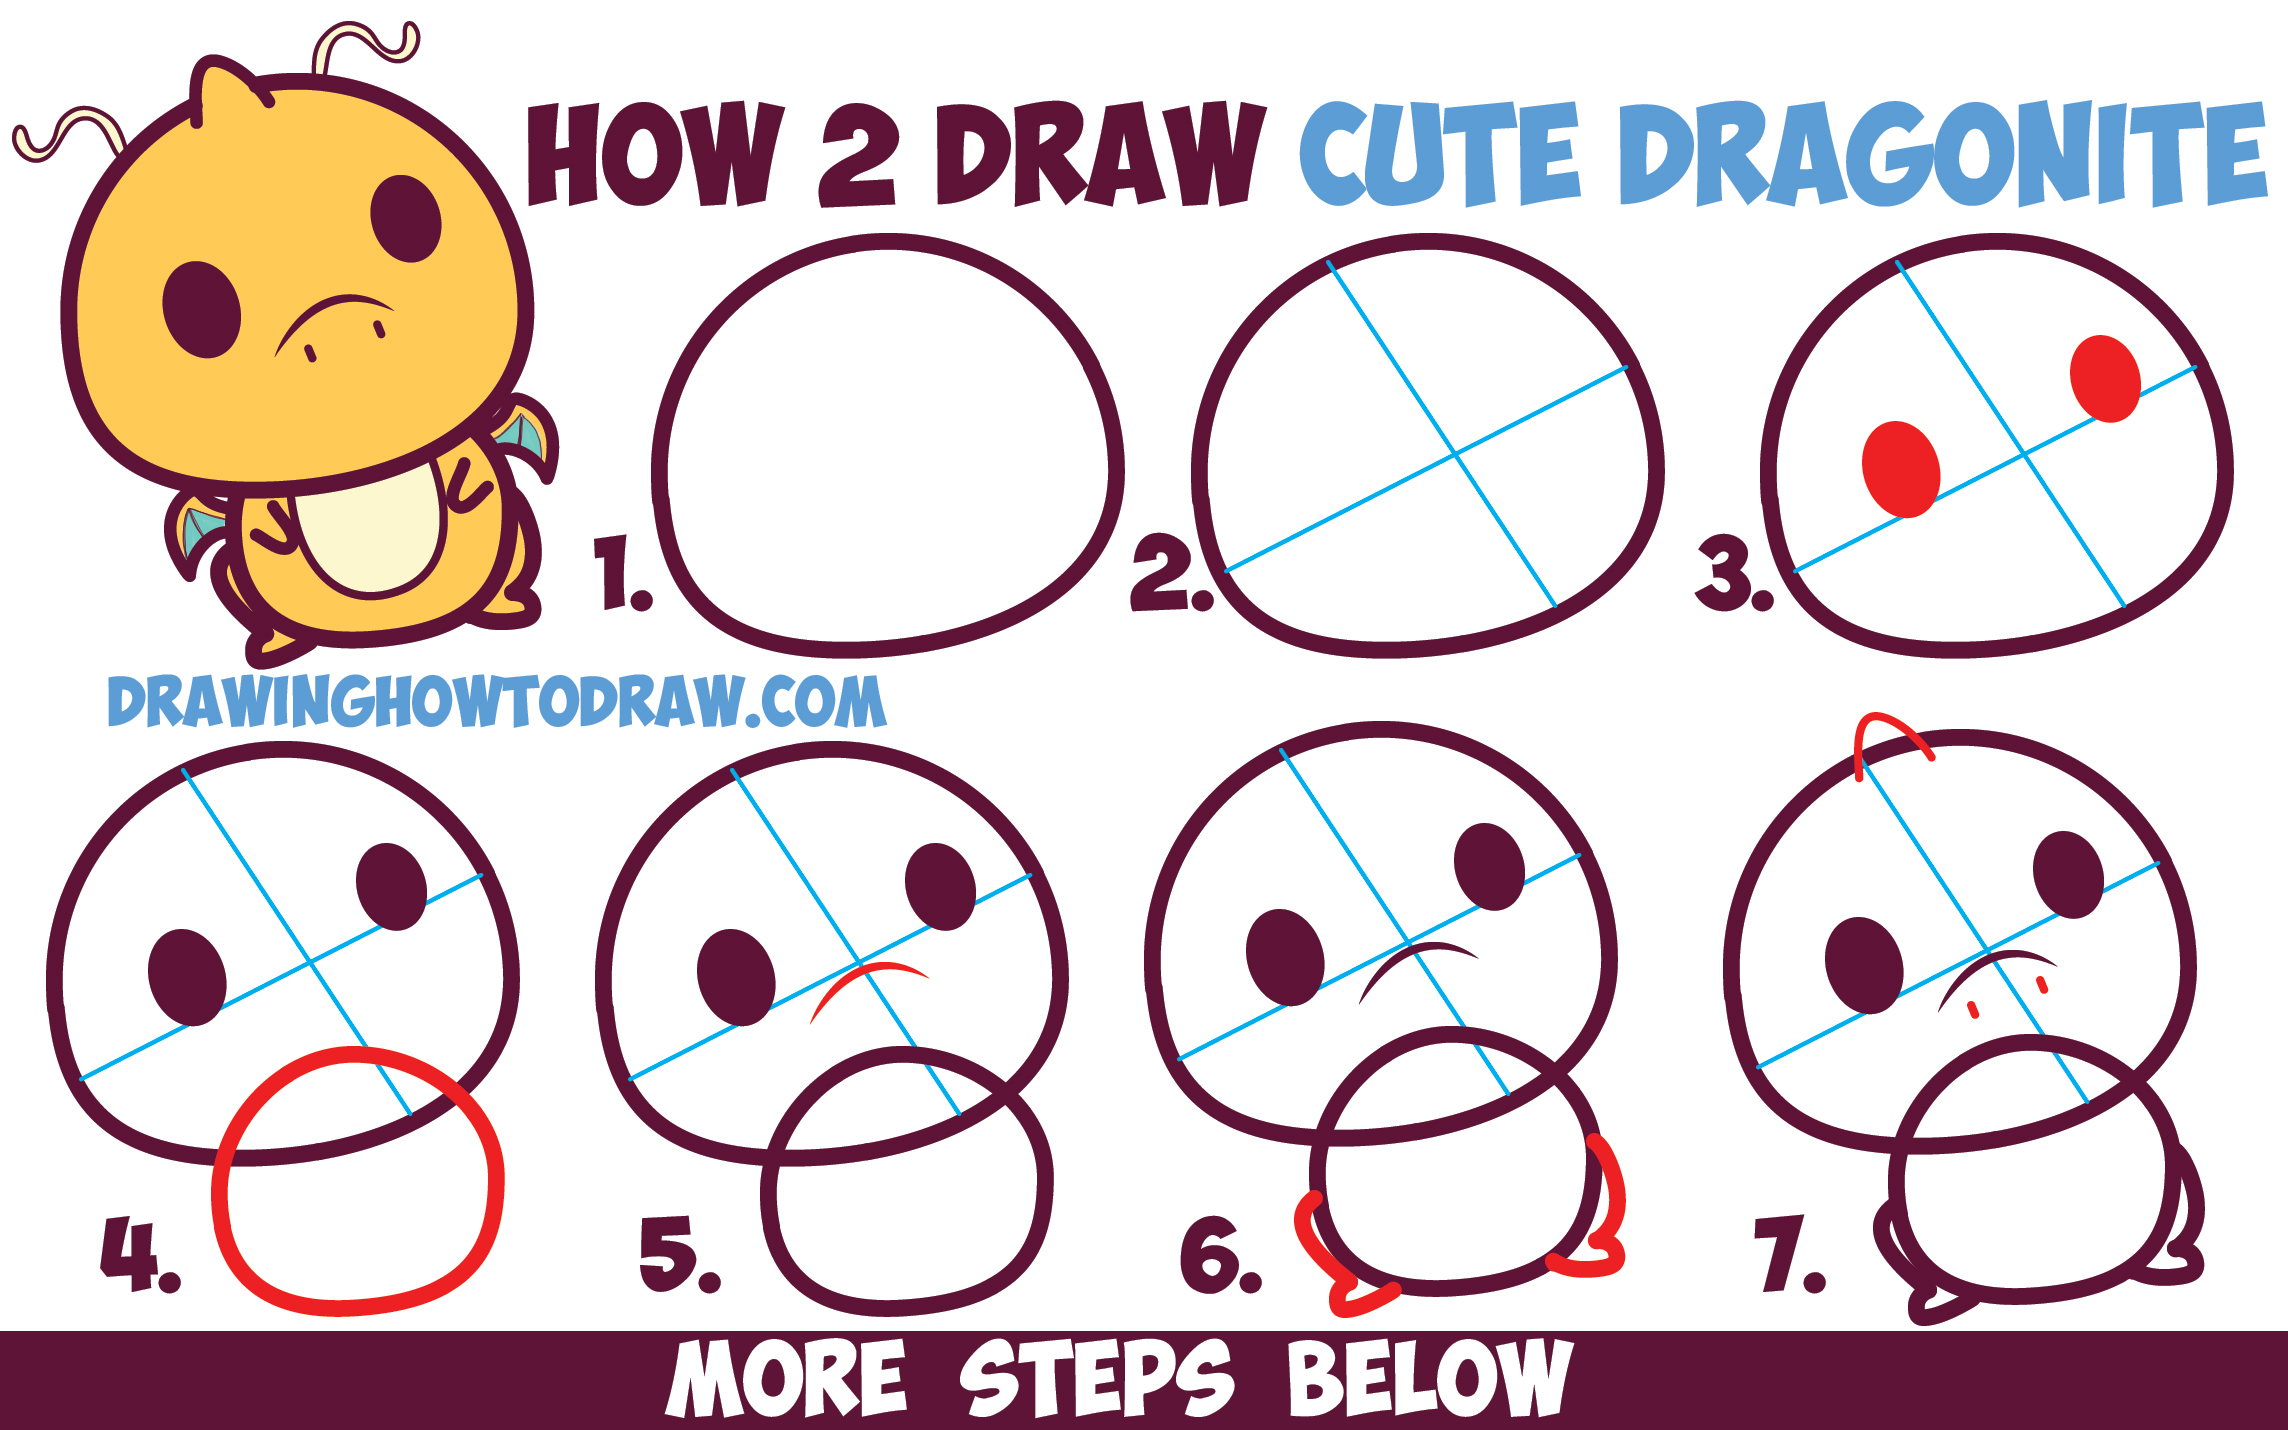 How to draw cute dragonite chibi kawaii from pokemon for How to draw easy stuff but cute